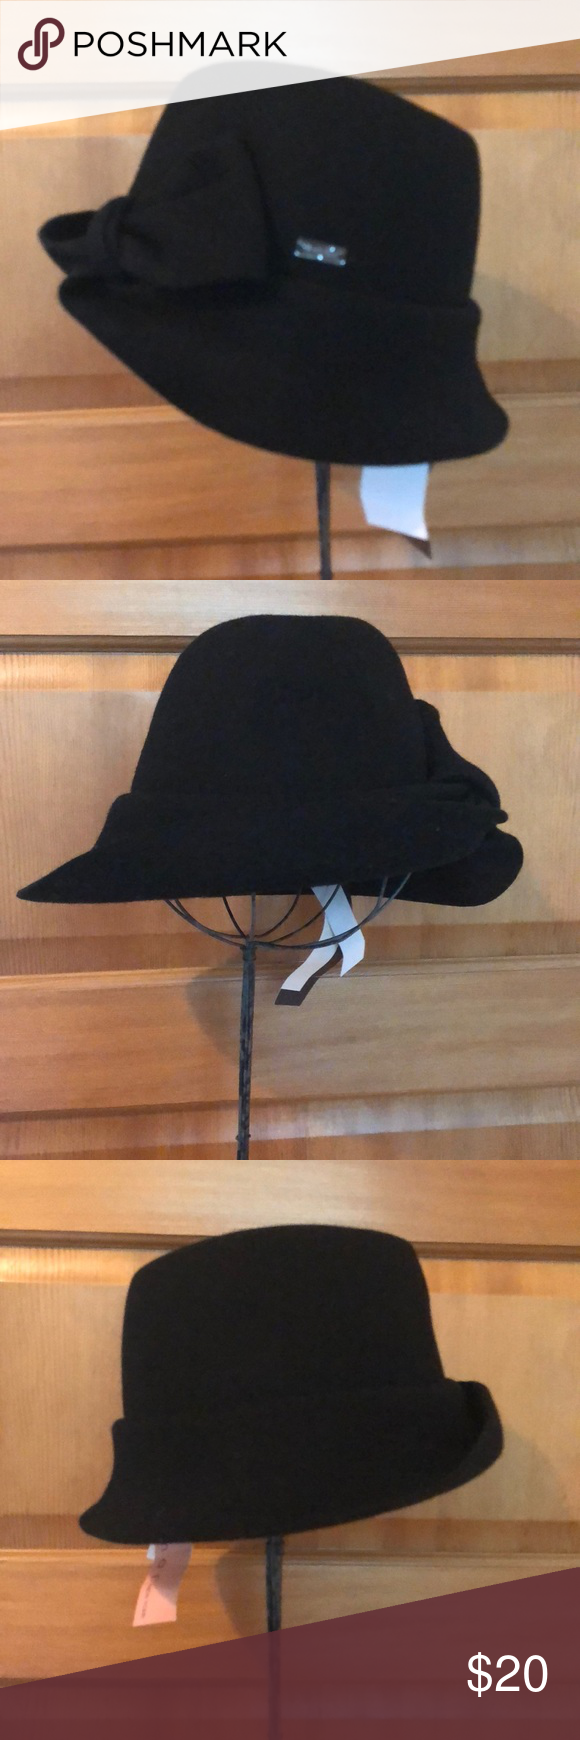 f519a2d158e007 Betmar black wool fedora style hat with knot brim detail. O/S adjustable  fit. New with tags/never worn. Smoke free home. Betmar Accessories Hats